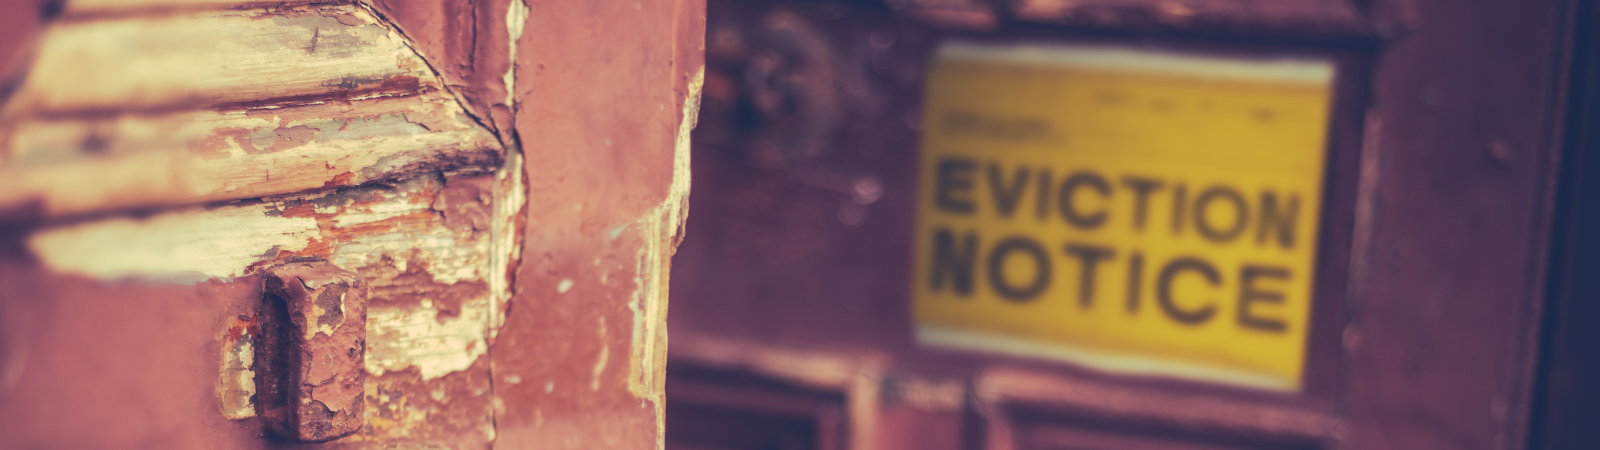 eviction banner image